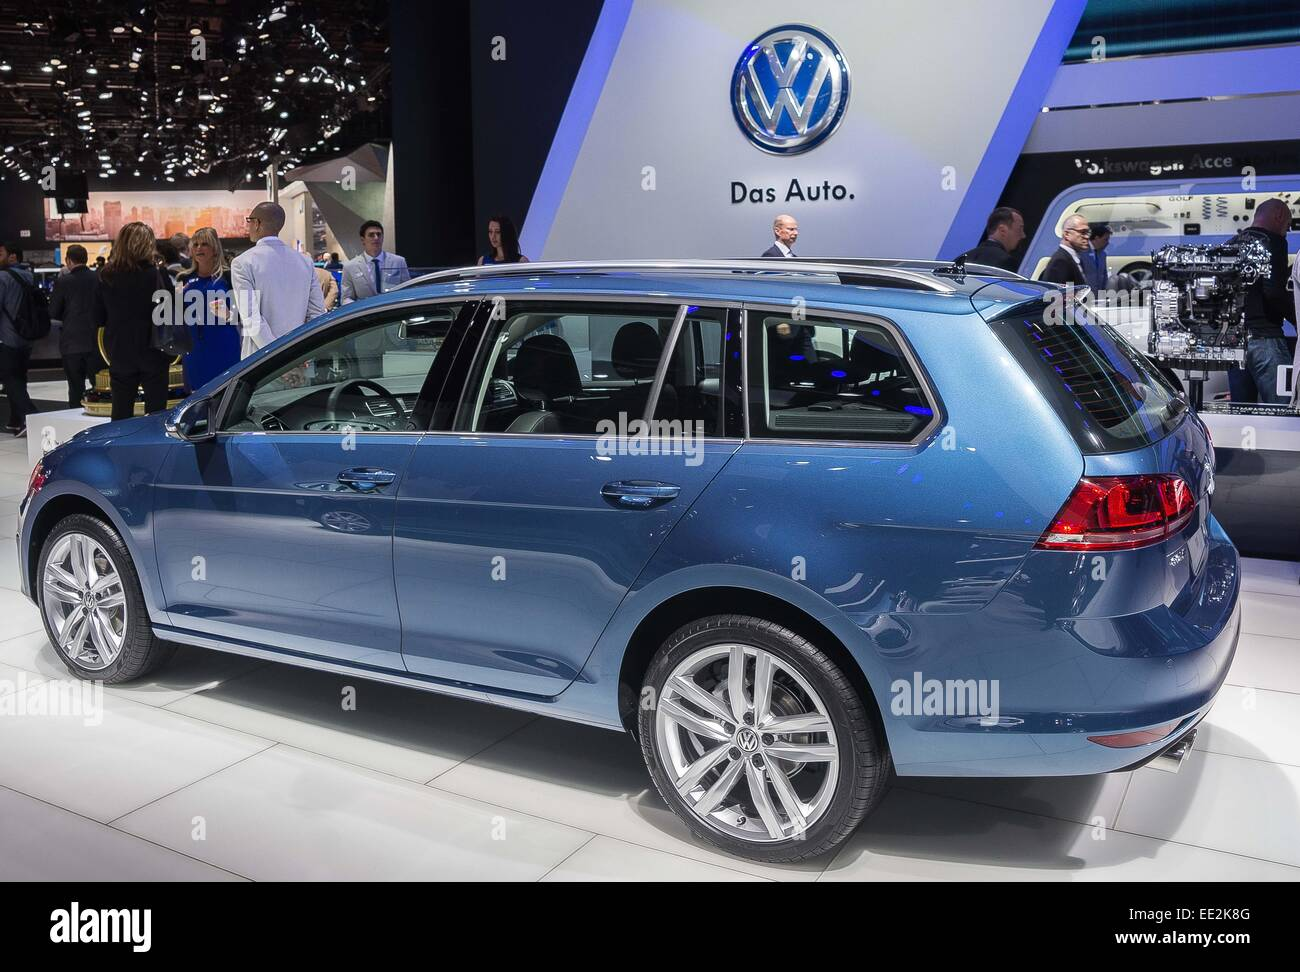 detroit mi usa 12th jan 2015 volkswagen golf sportwagen tdi stock photo royalty free image. Black Bedroom Furniture Sets. Home Design Ideas